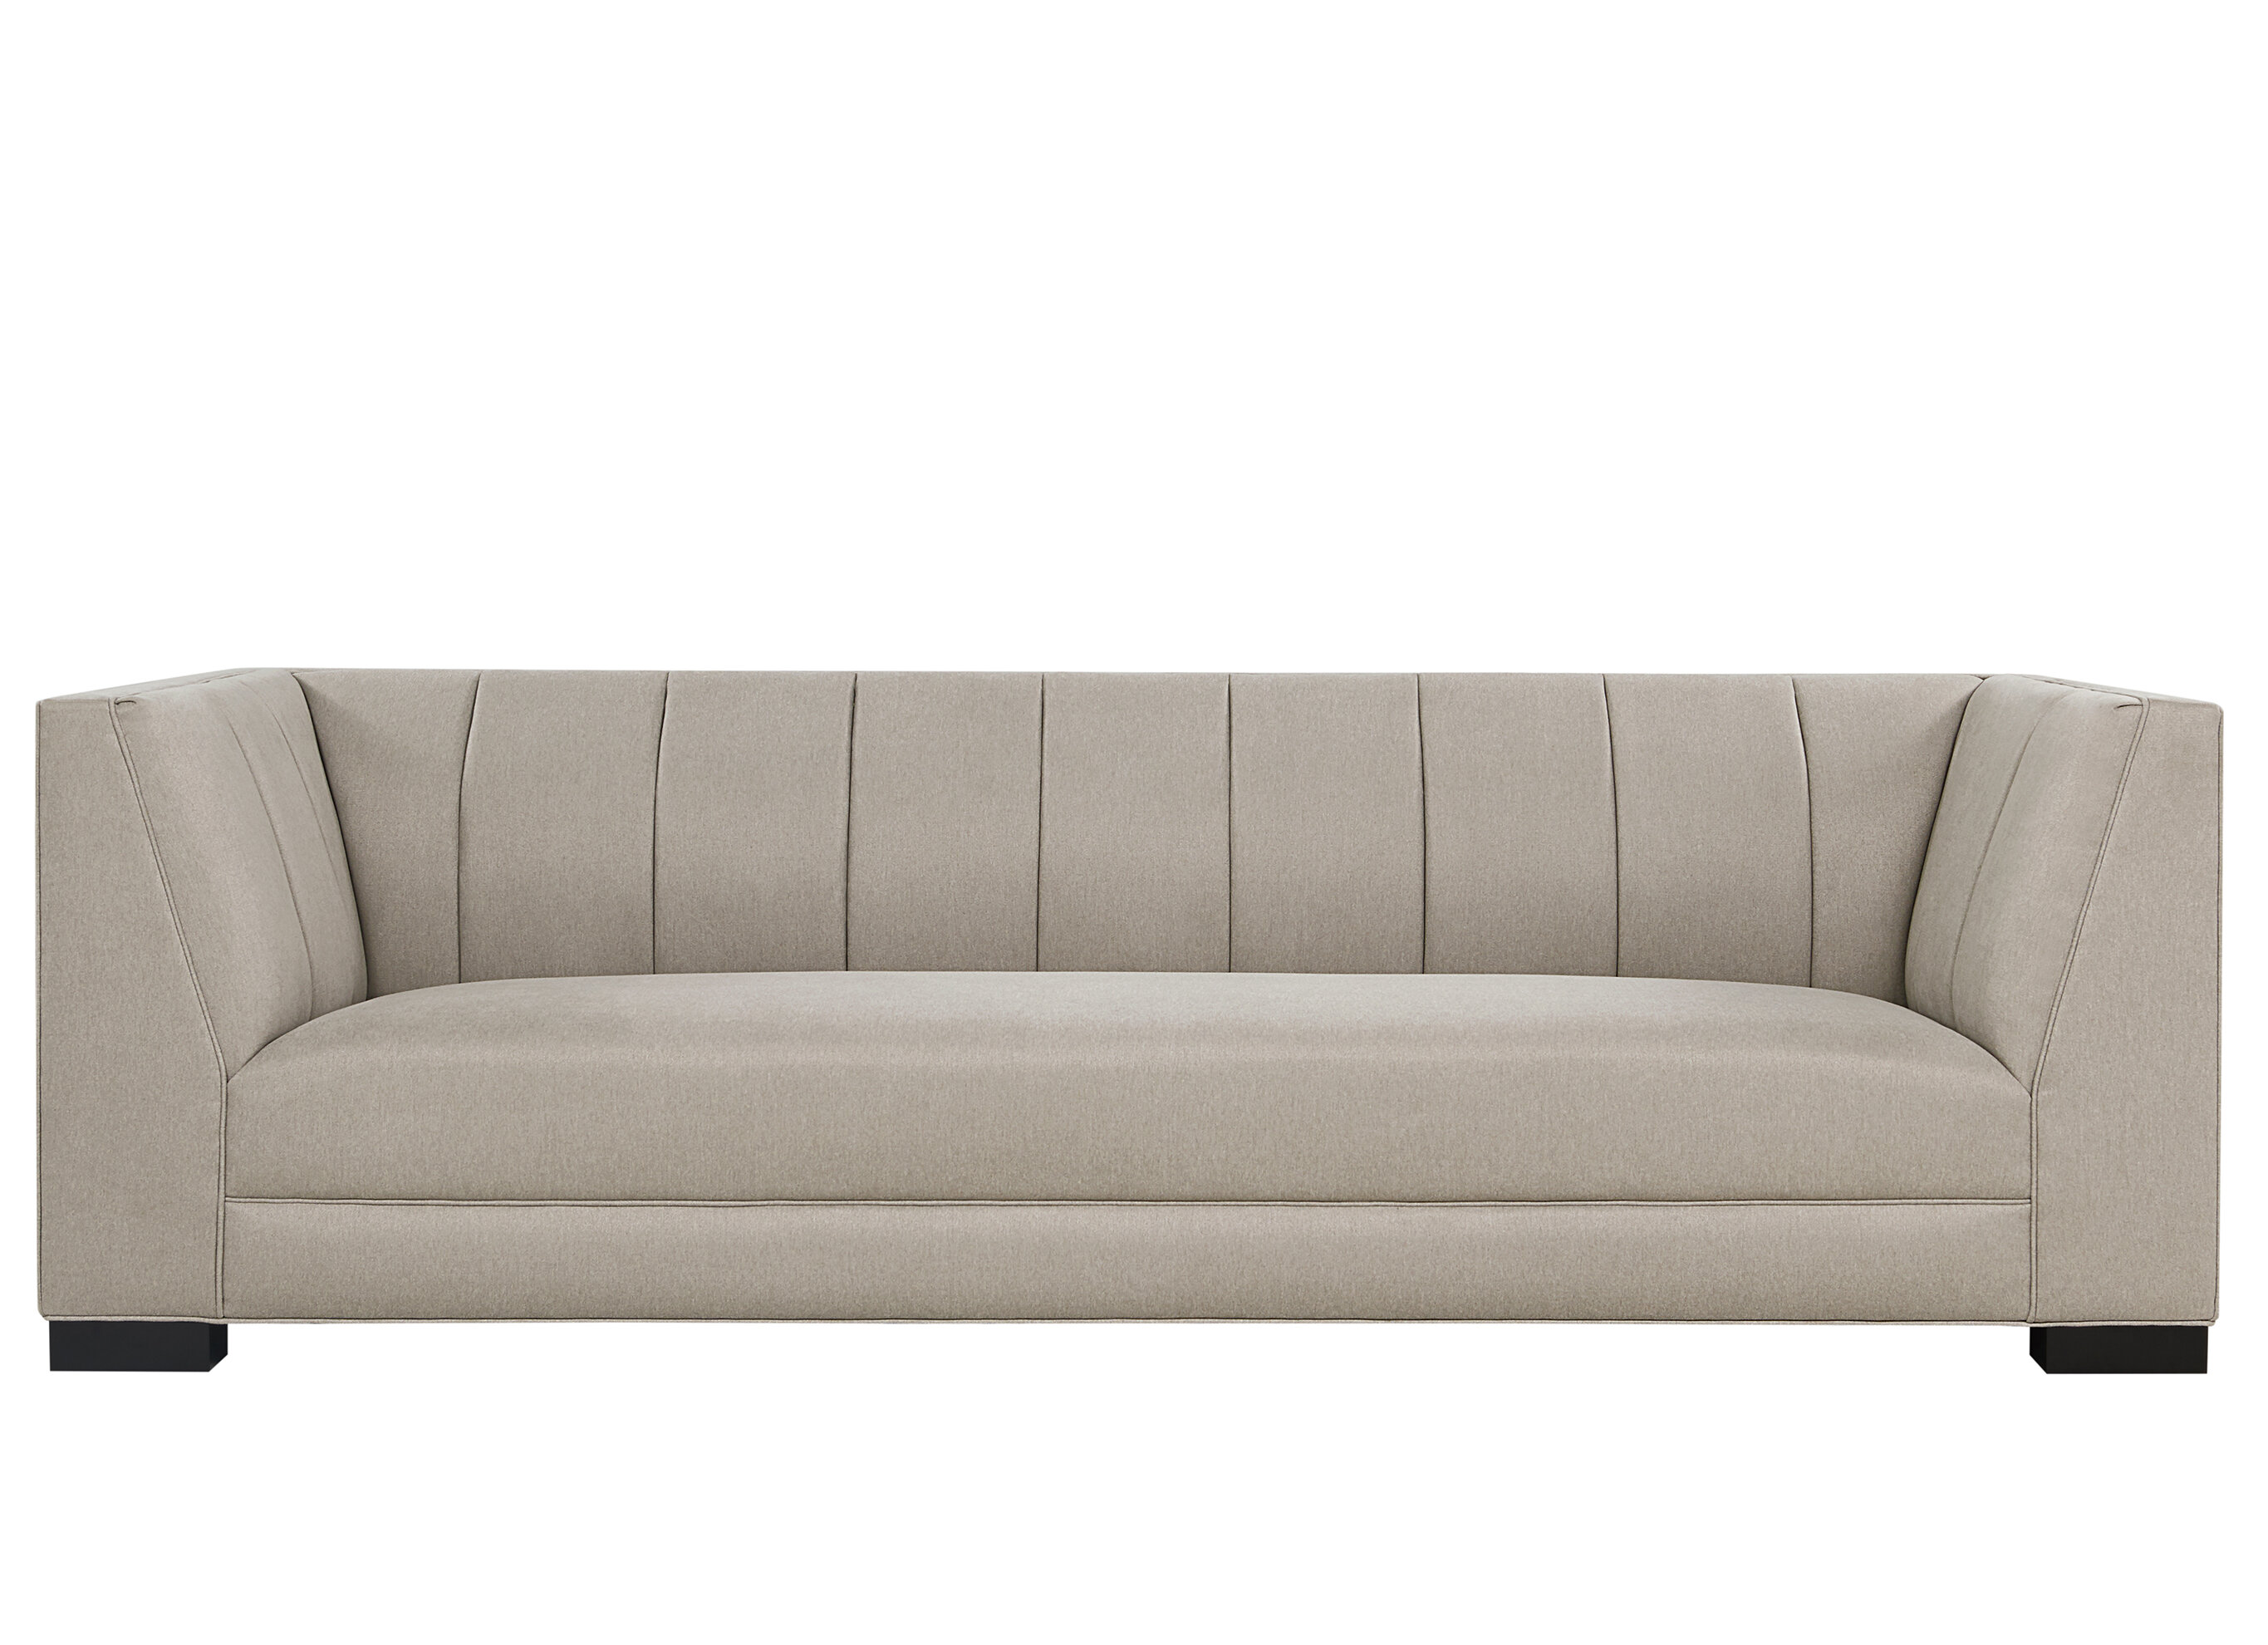 Orren ellis fournier tufted back sofa wayfair